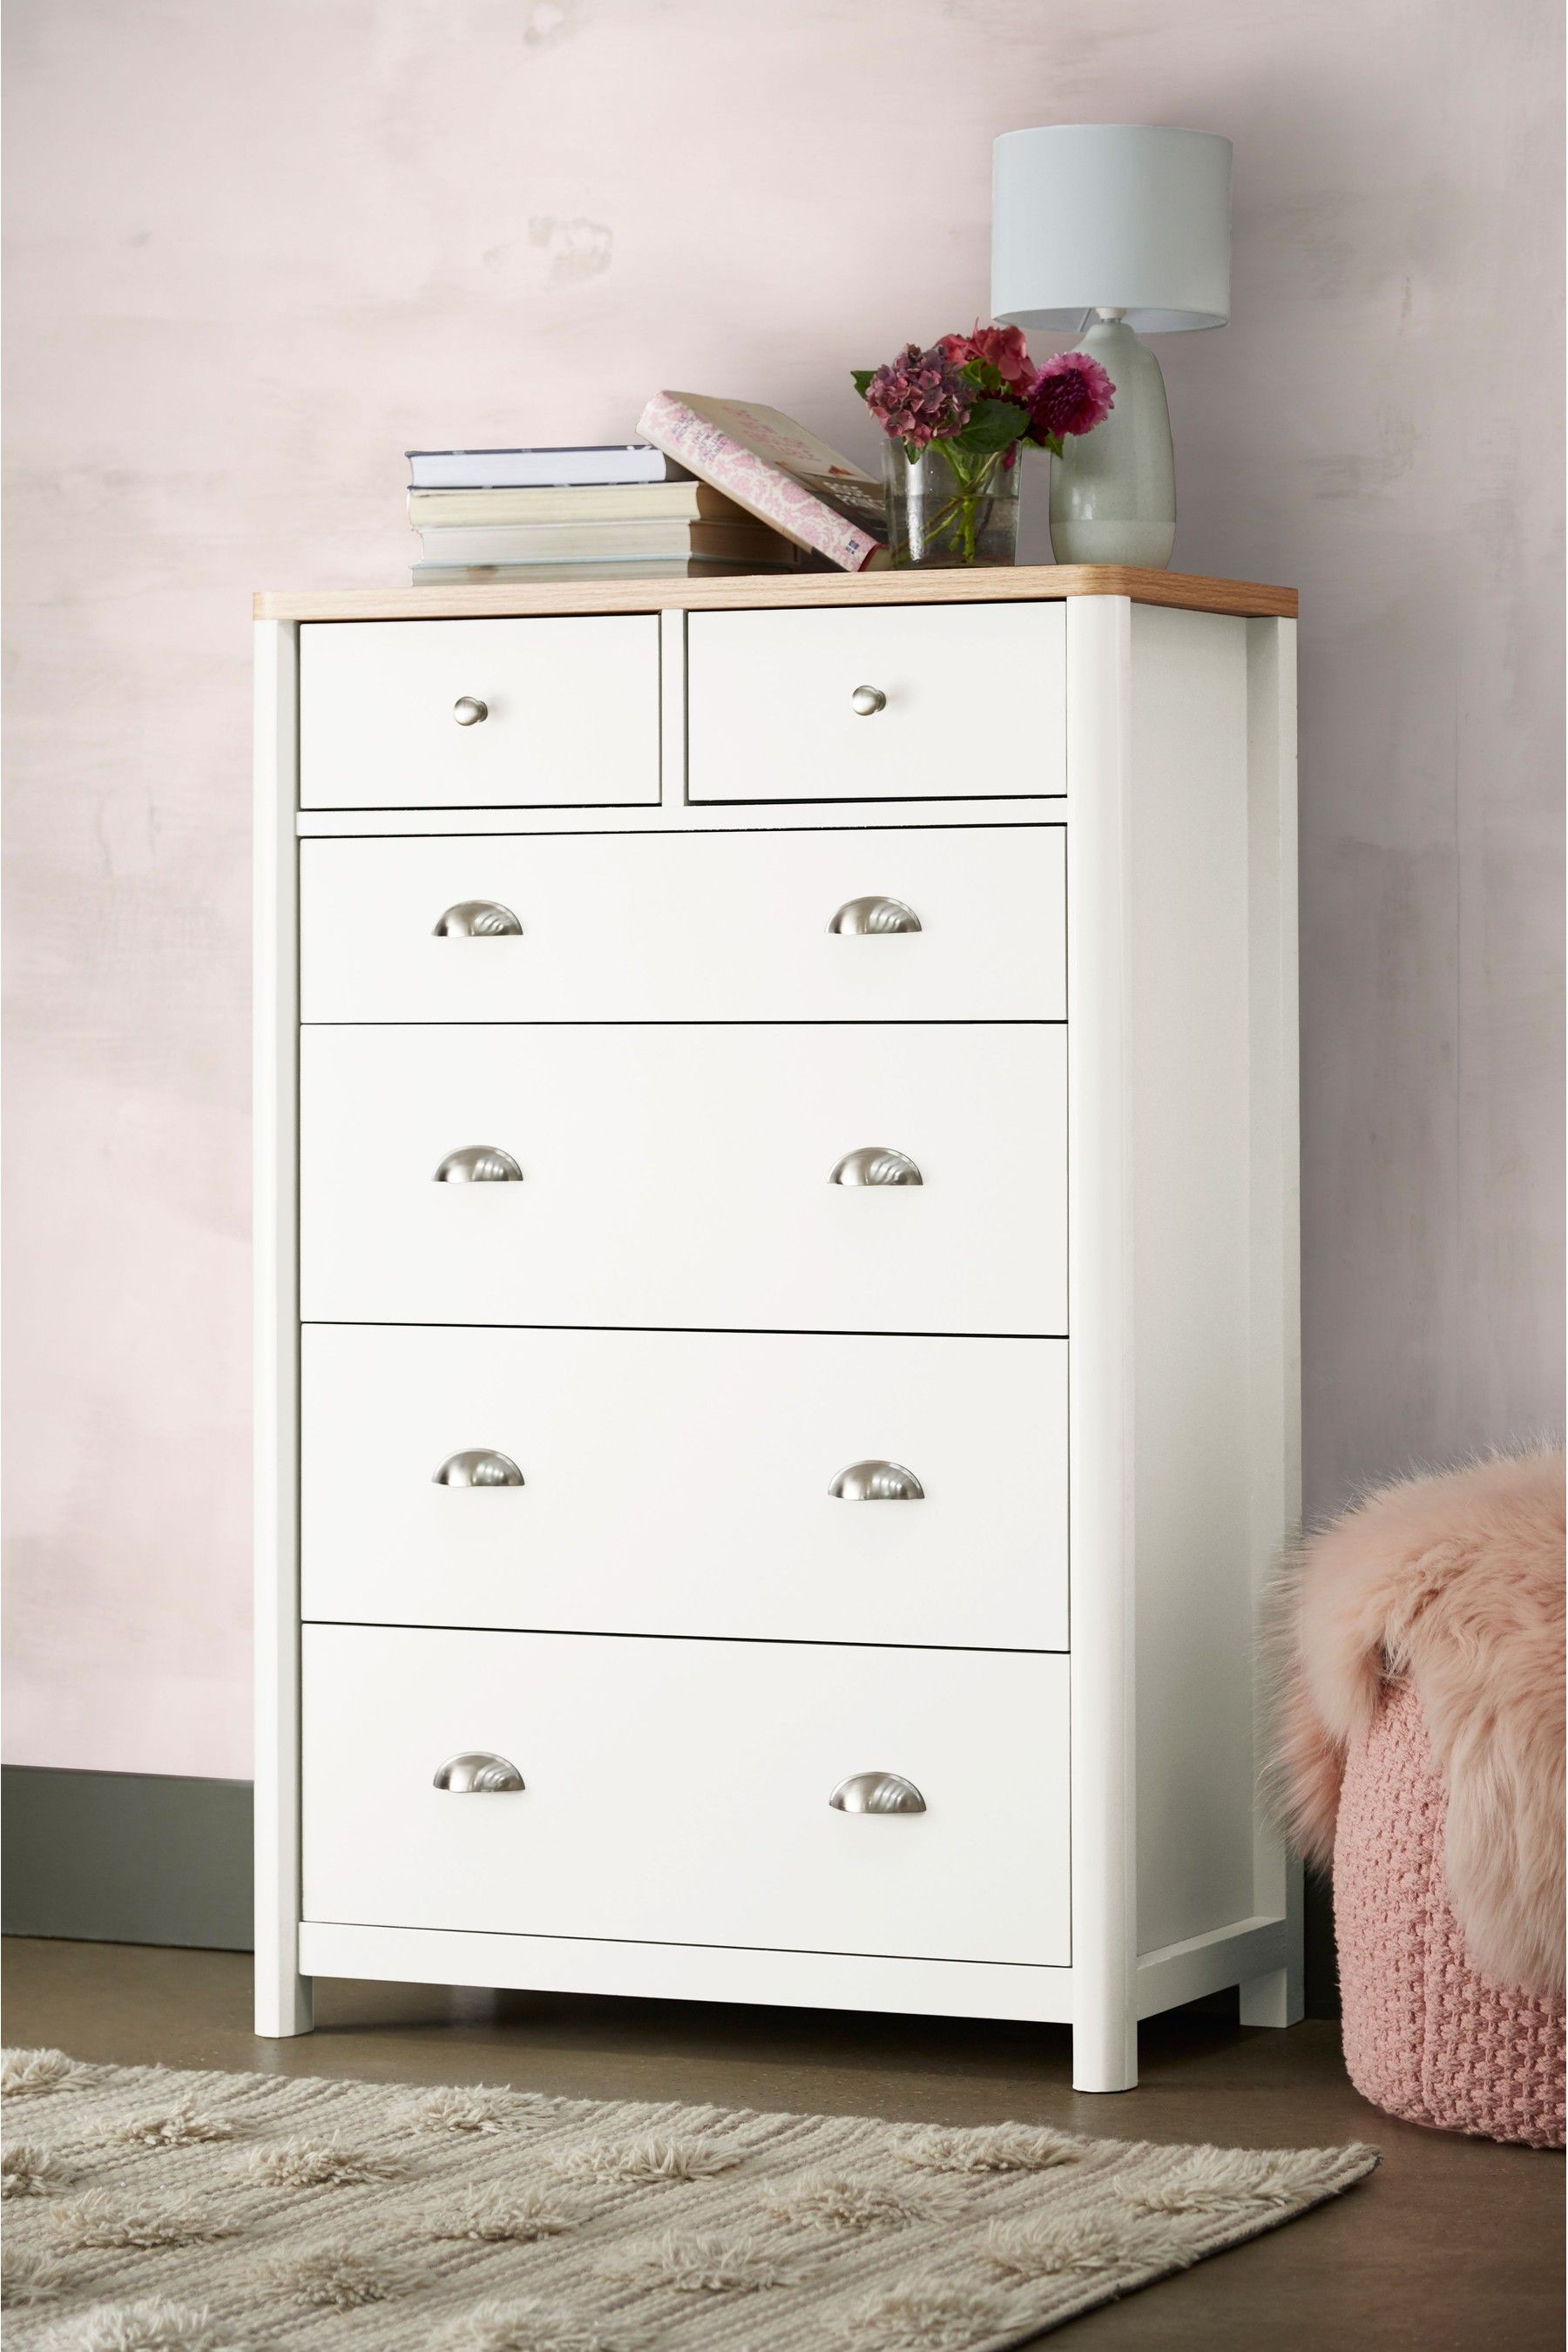 Next Hanley Tall Chest White Chest Of Drawers Decor White Chest Of Drawers Tall Chest [ 2700 x 1800 Pixel ]